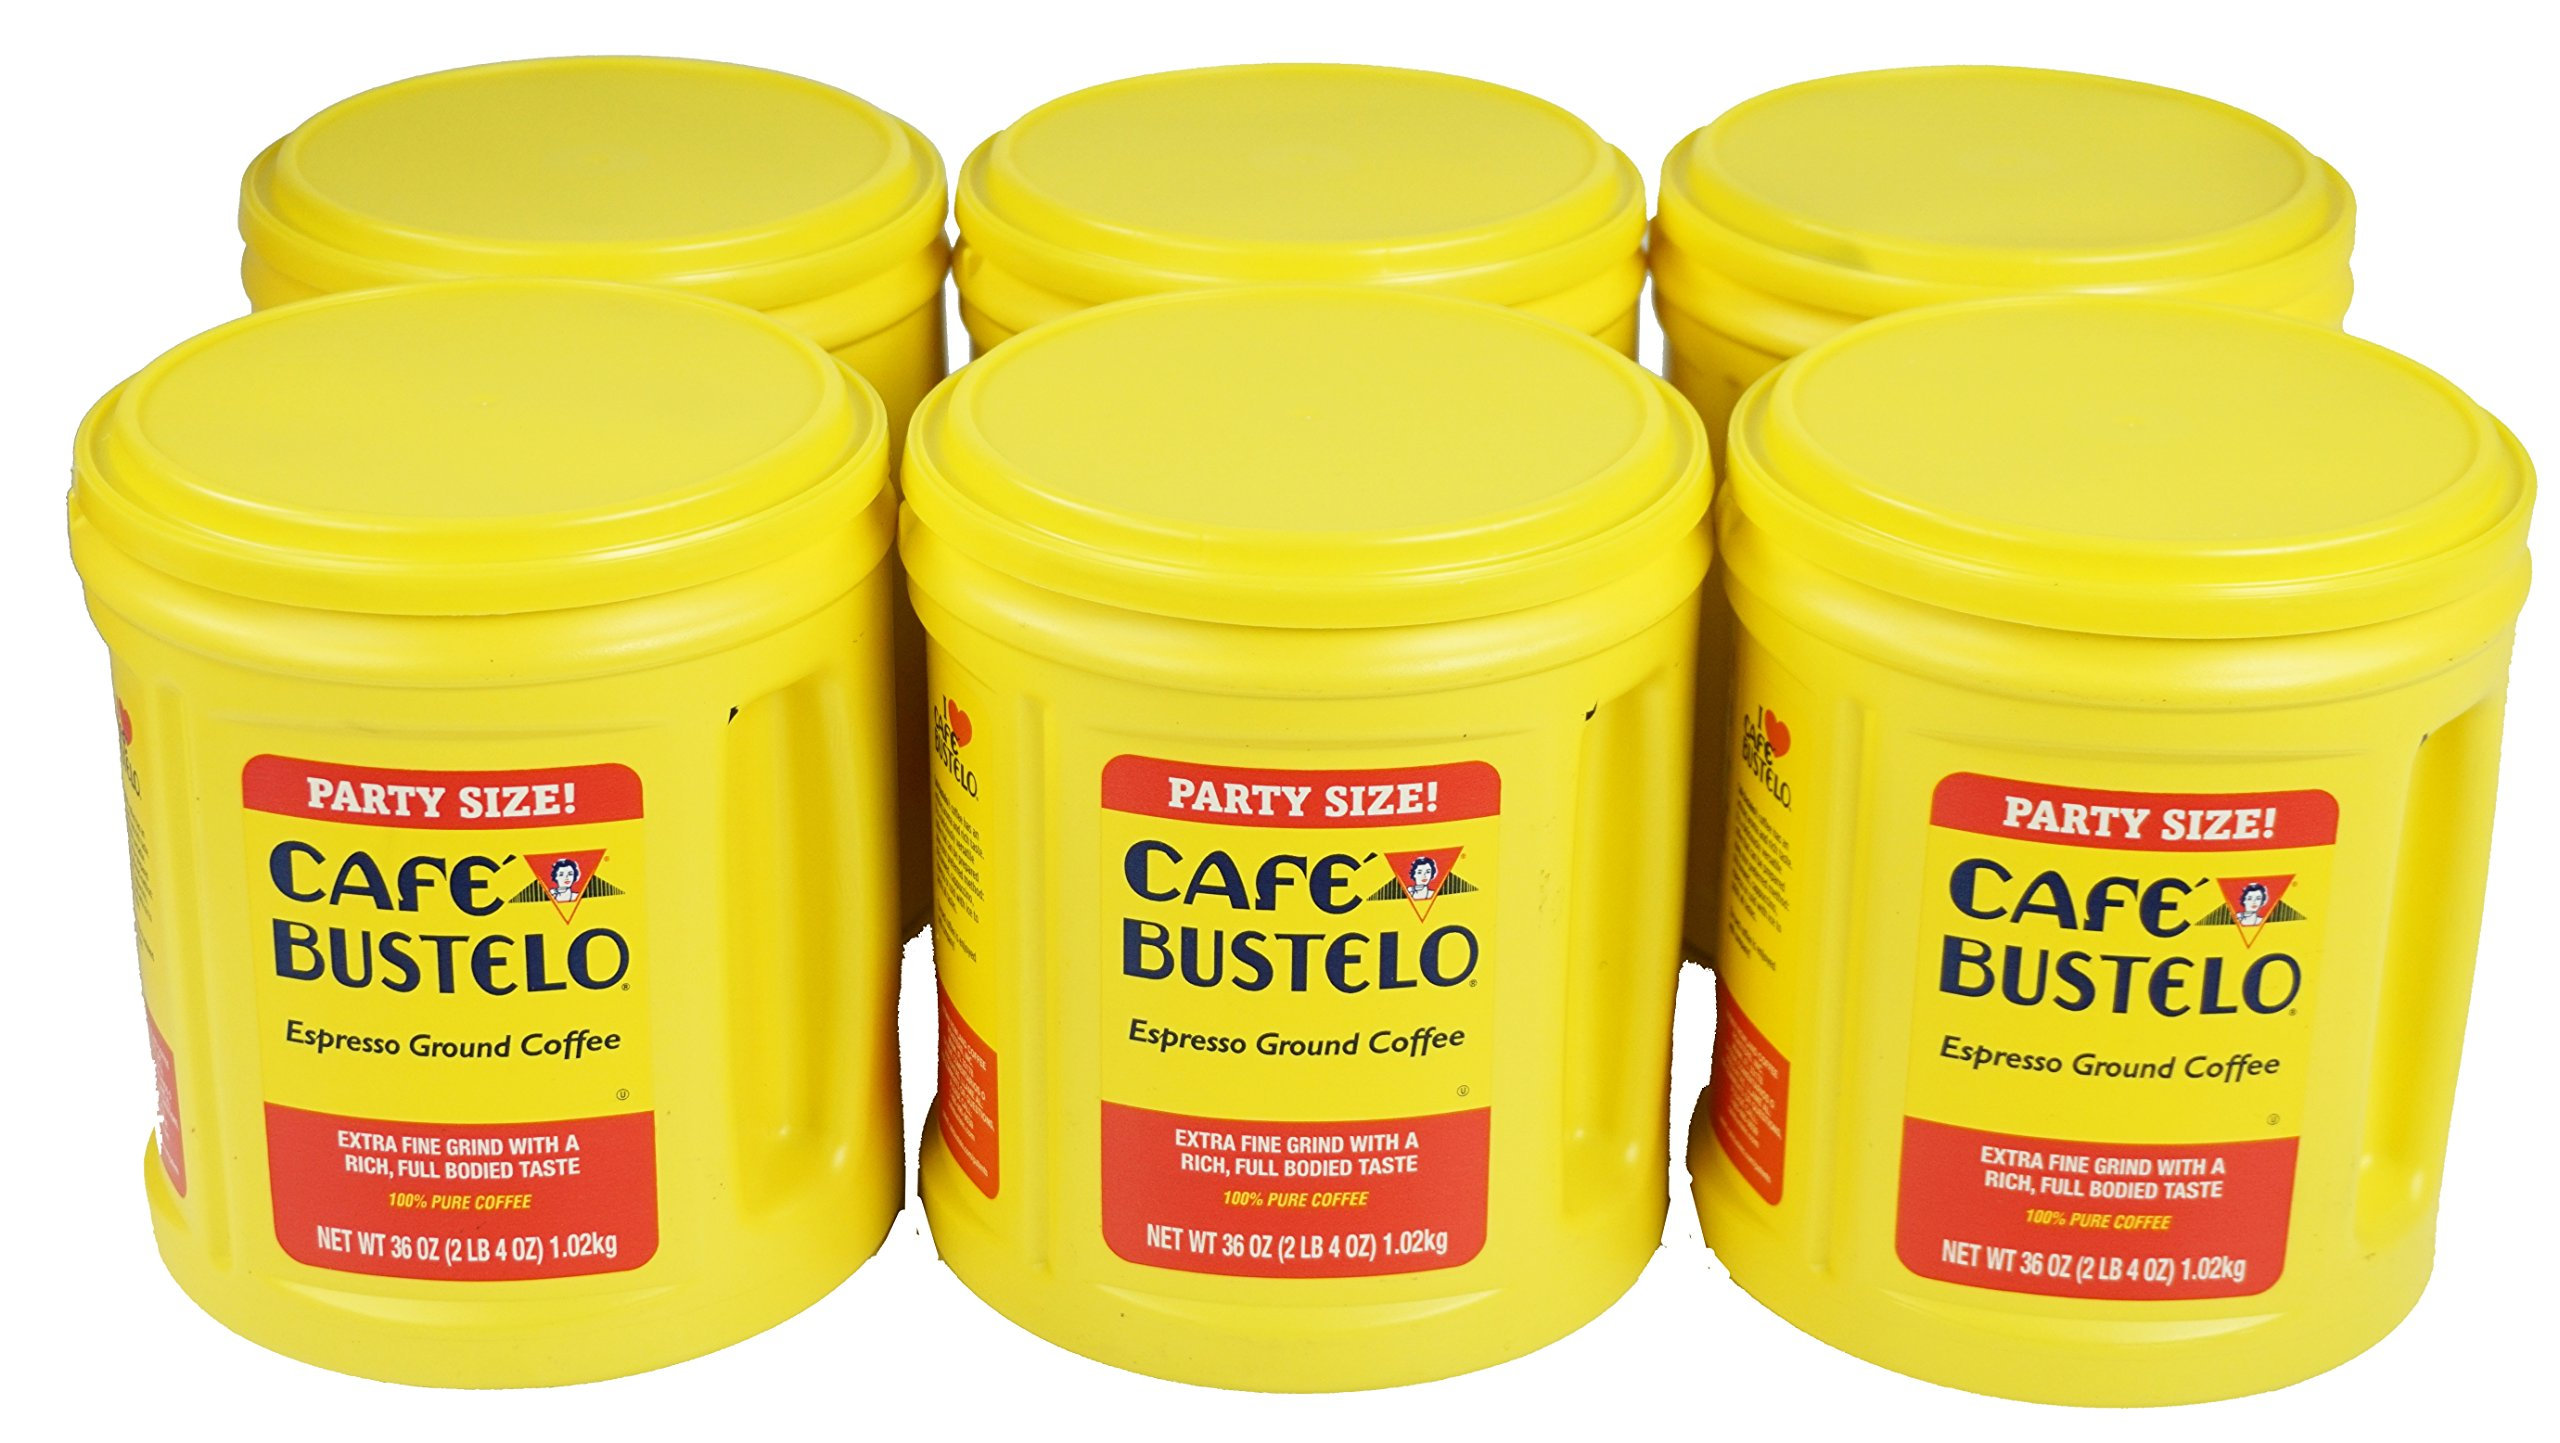 Cafe Bustelo Espresso Coffee, 36 Ounce Cans (Pack of 6)